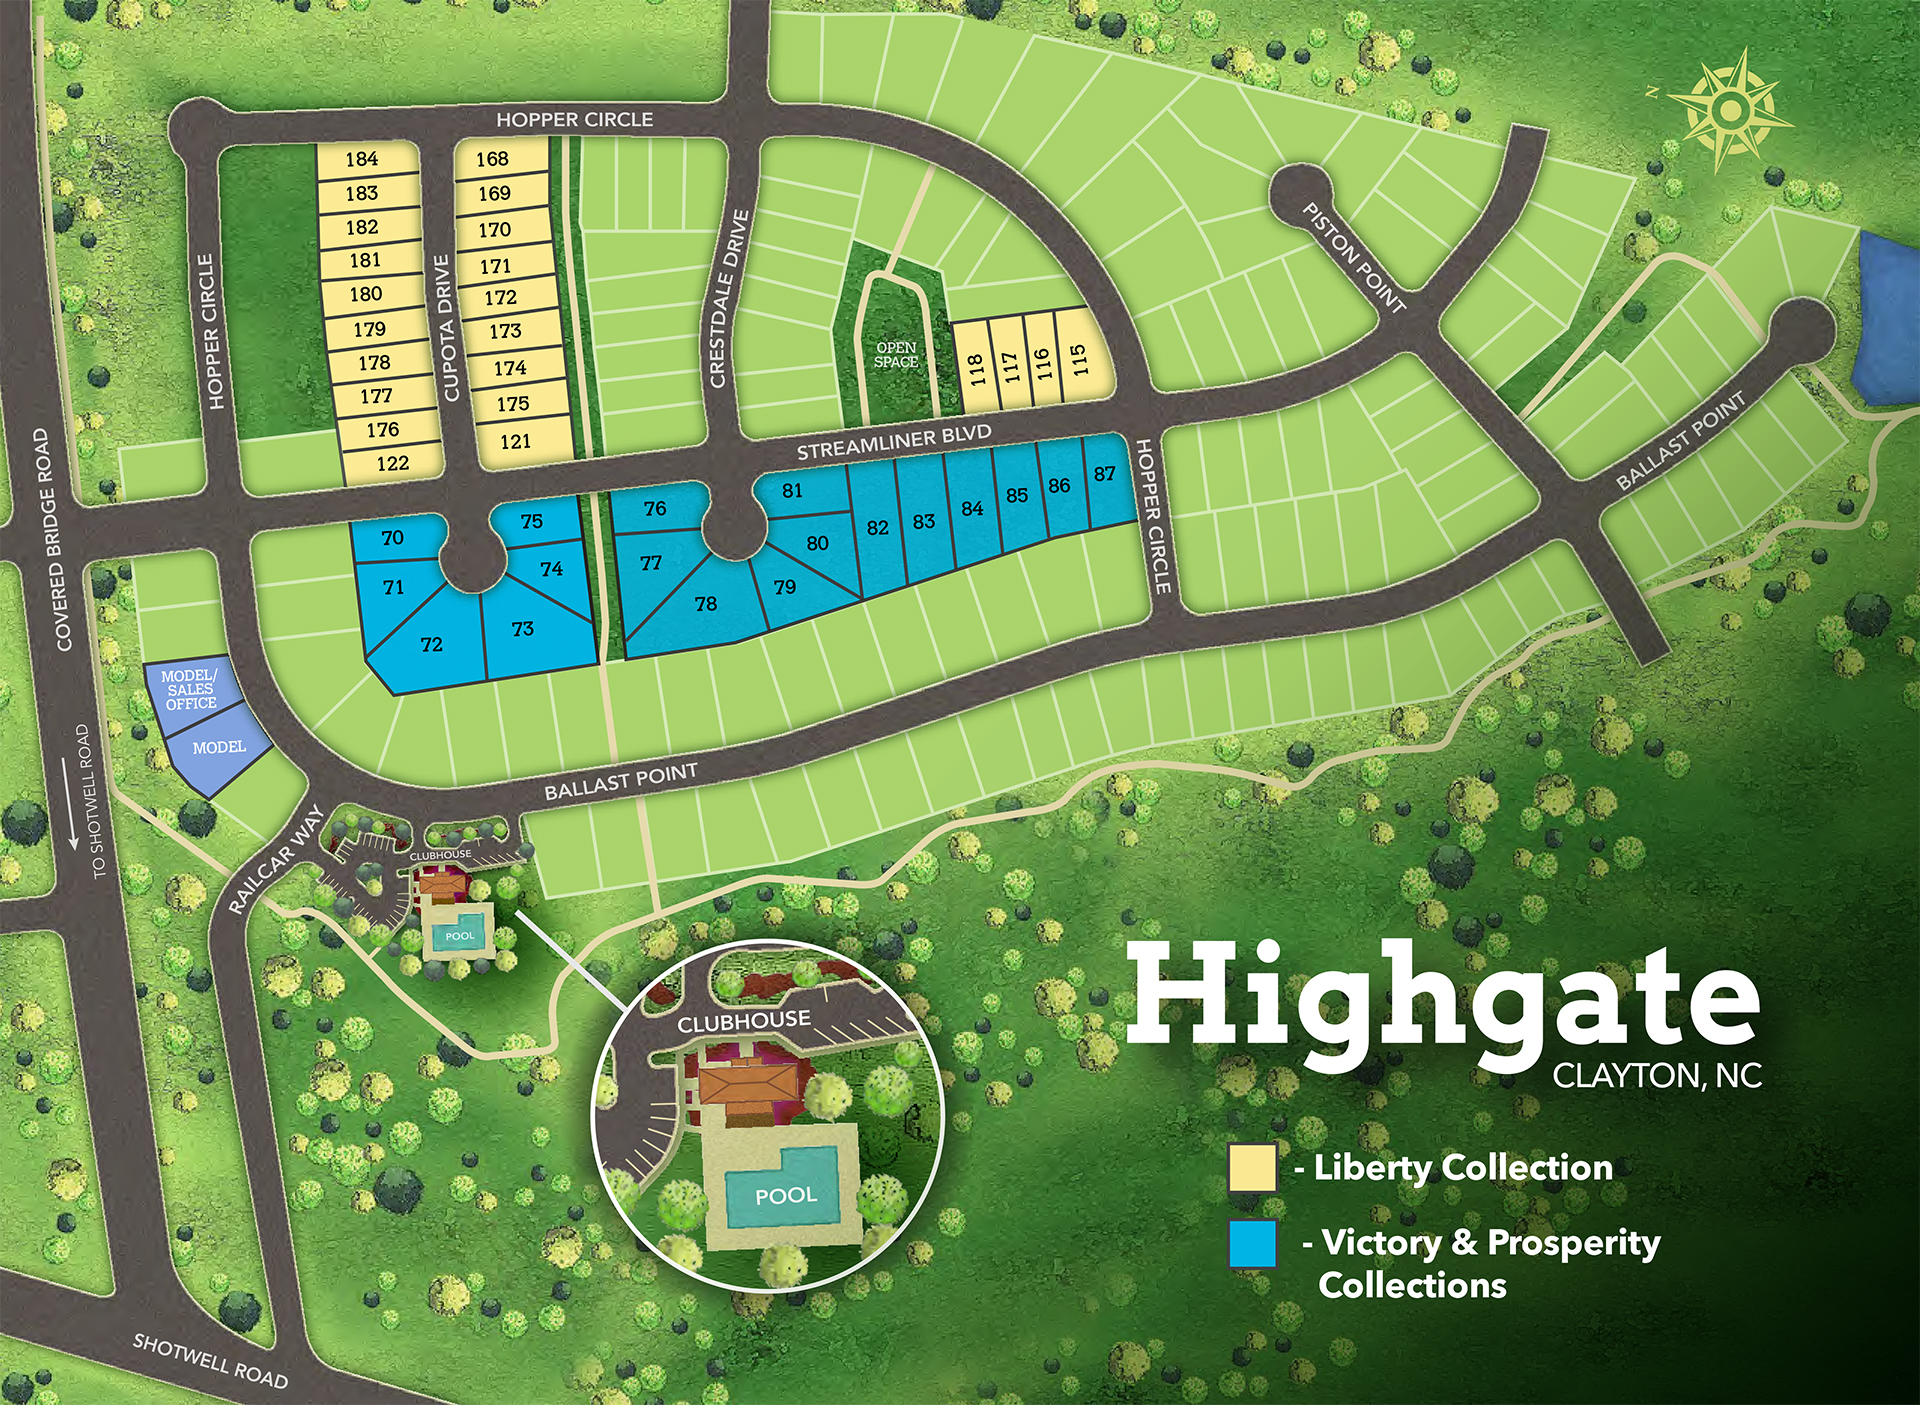 Clayton, NC Highgate New Homes from Chesapeake